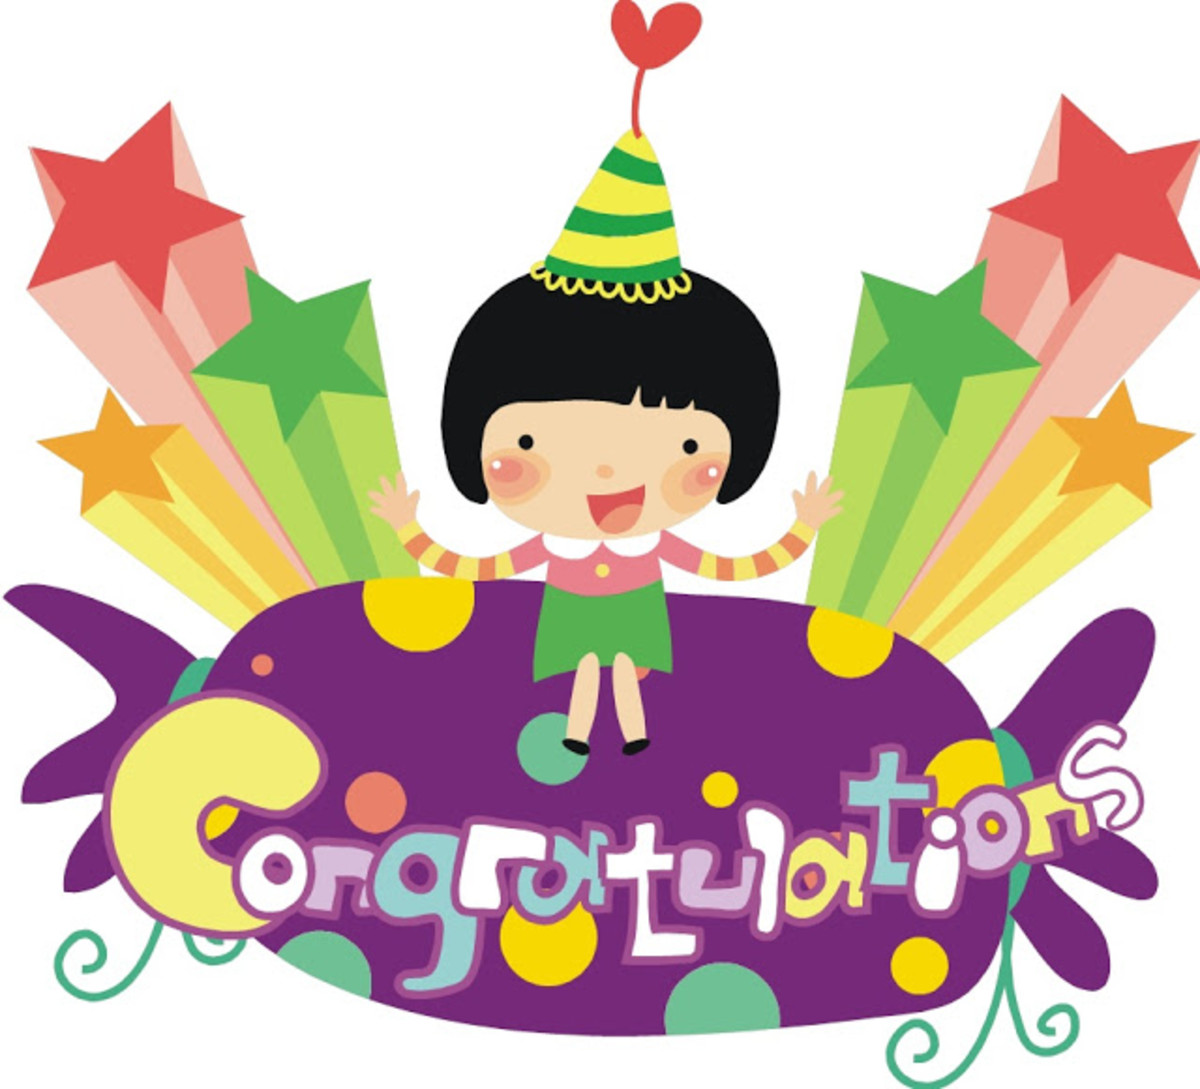 'Congratulations' Birthday Party Graphic